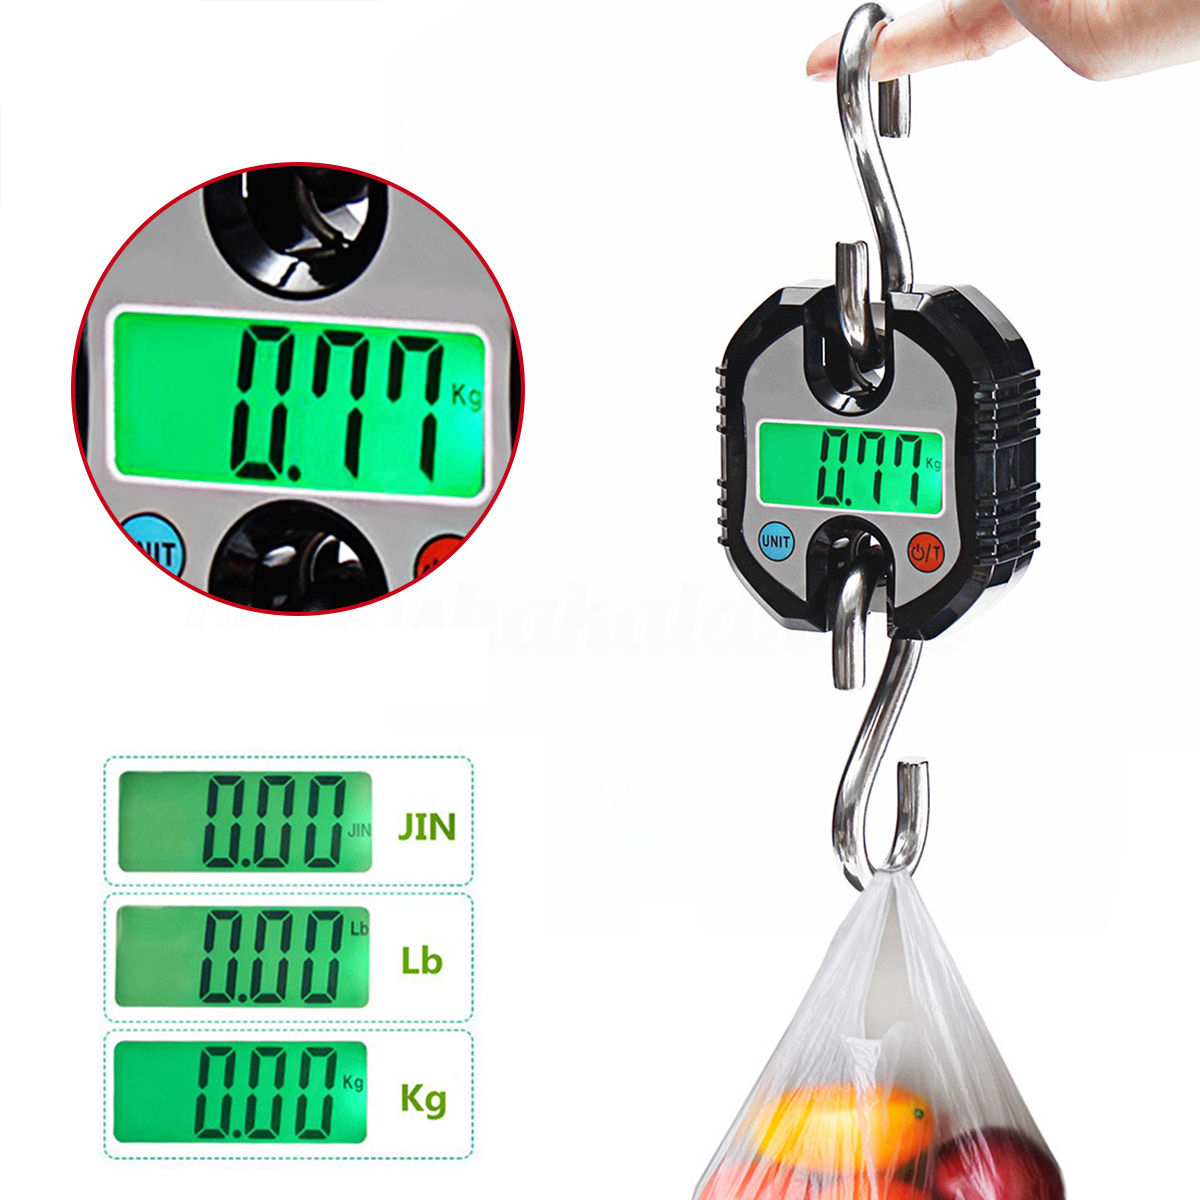 Portable Mini Crane Scale 150kg LCD Digital Weight Electronic Hanging Hook Scales Mayitr светильник c110158 3 50 donolux